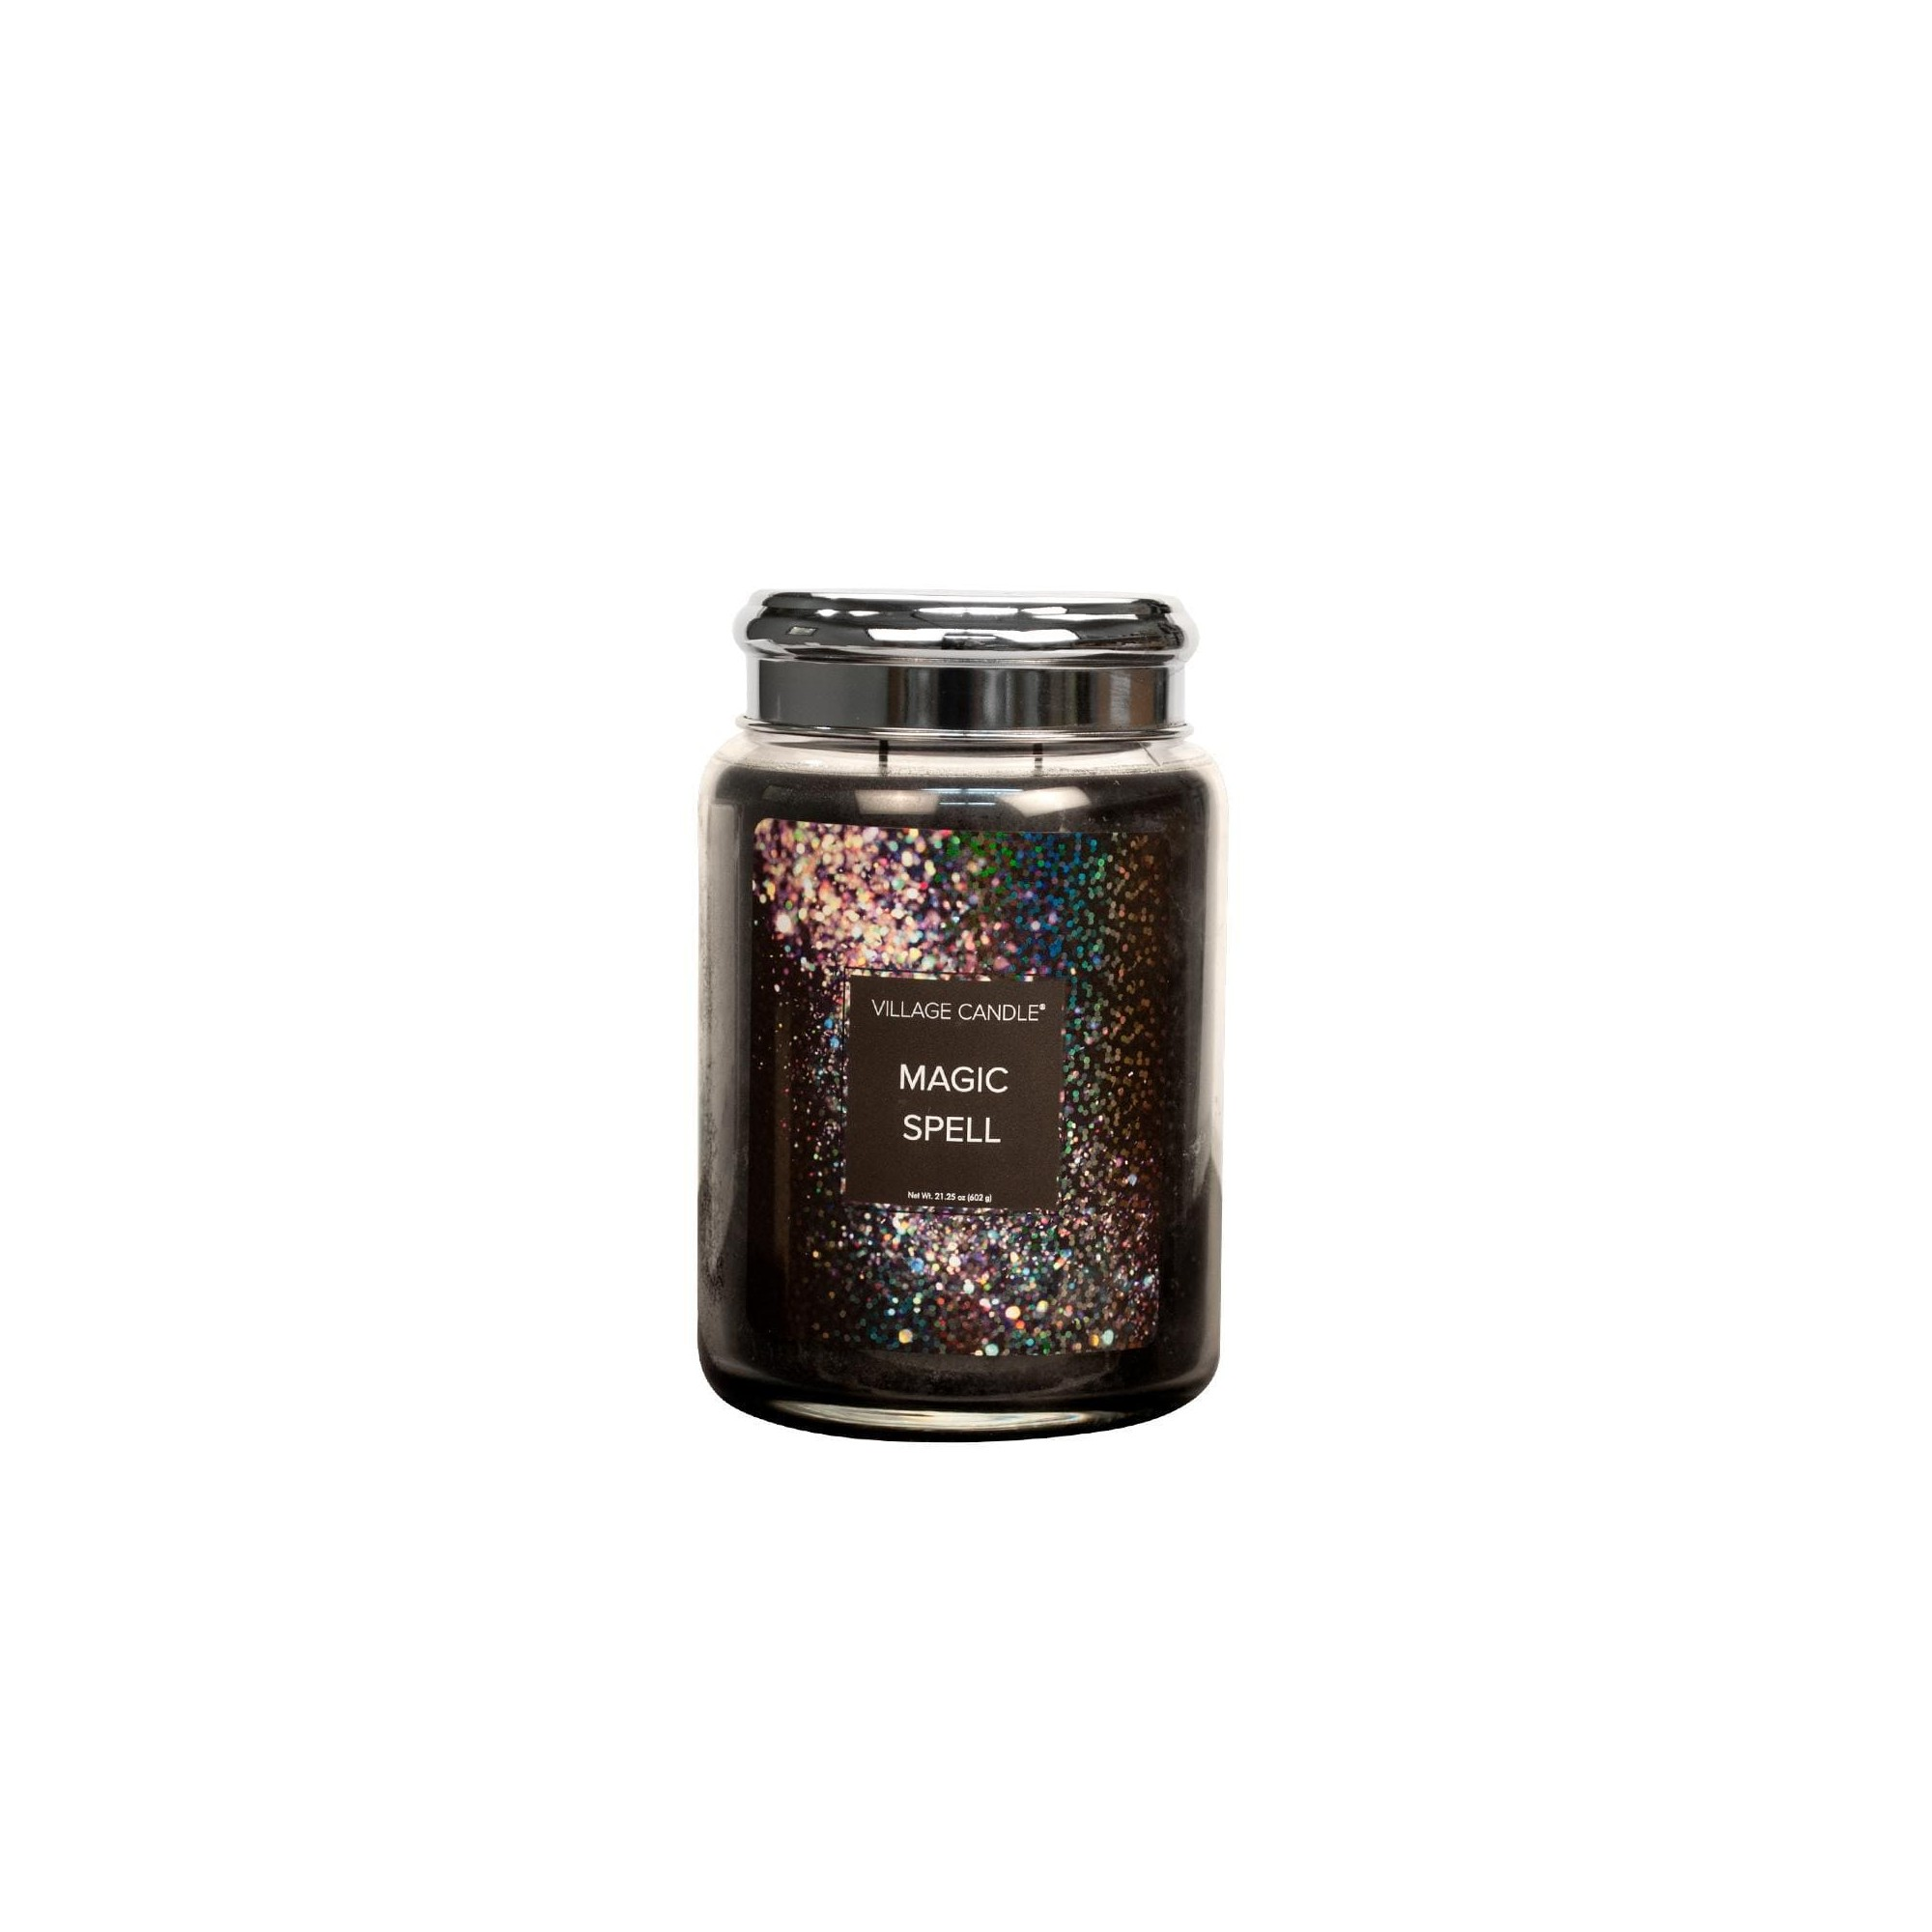 Village Candle Magic Spell Large Glass Jar - Fantasy Collection